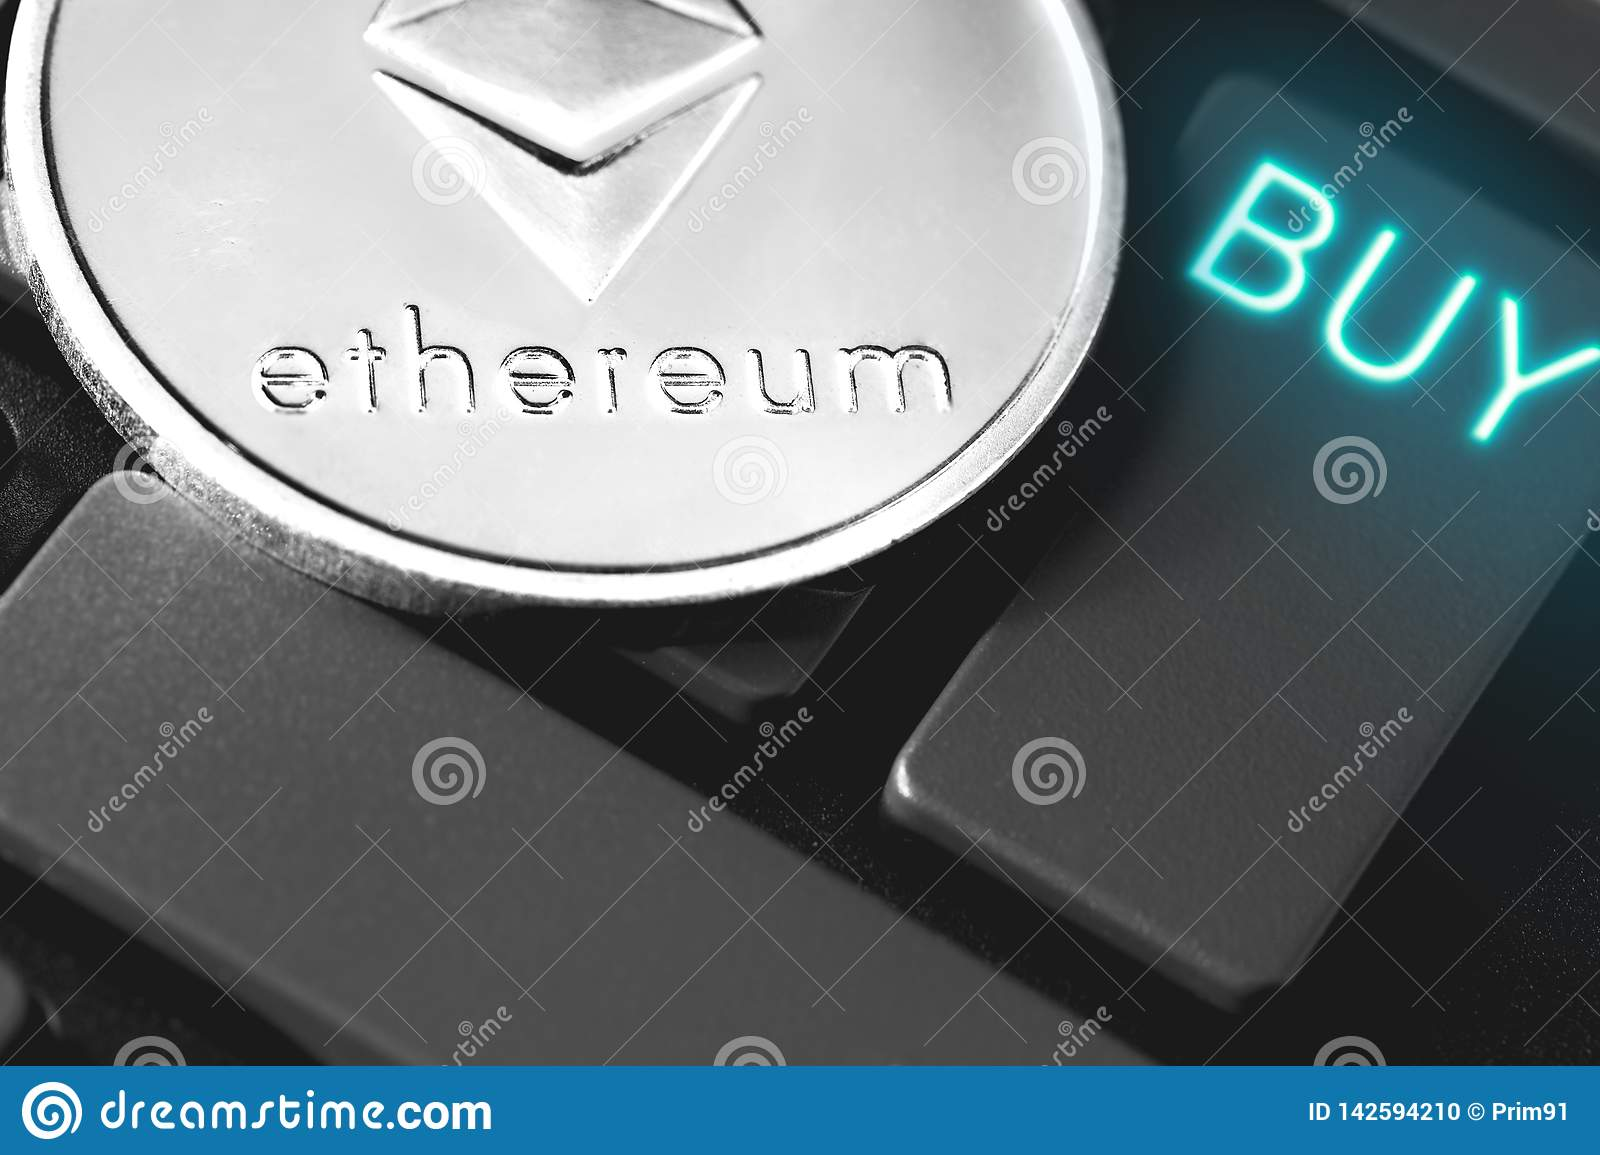 how can i buy ethereum stock